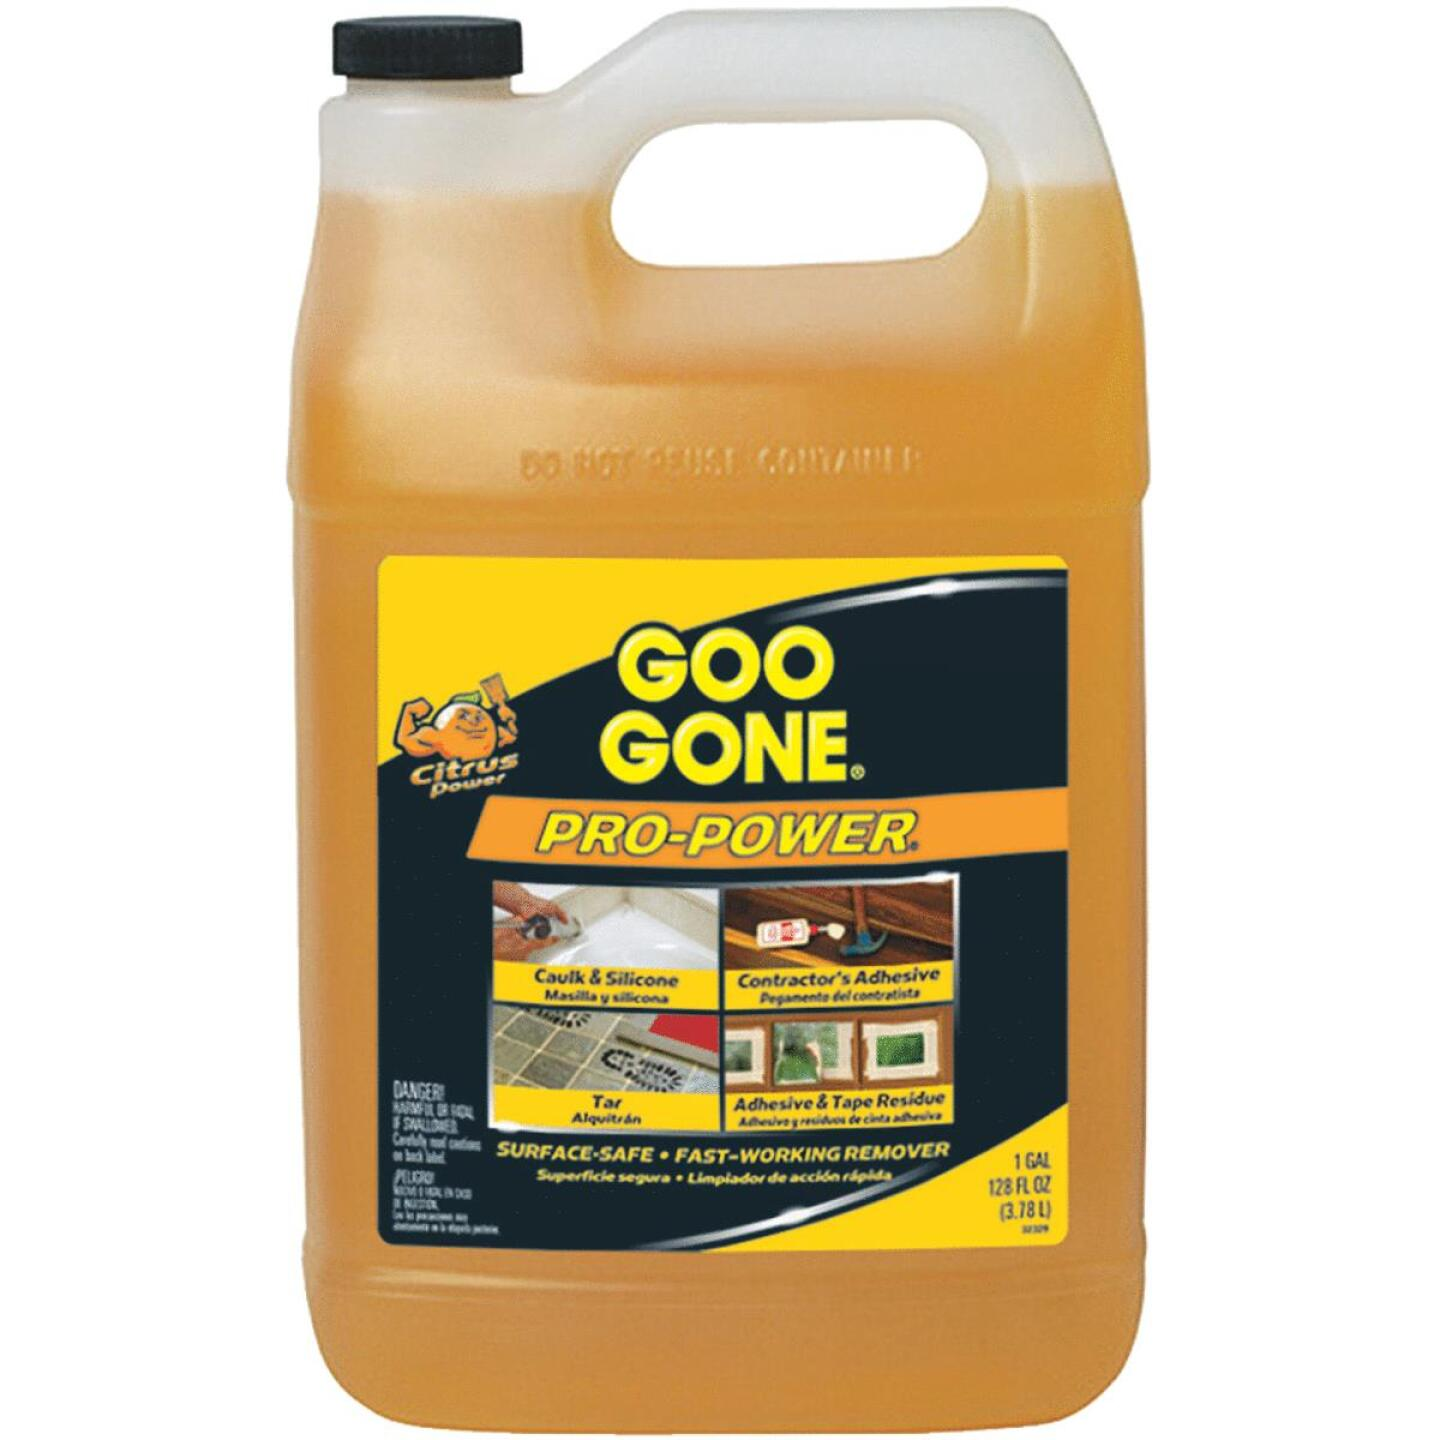 Goo Gone 1 Gal. Pro-Power Adhesive Remover Image 287